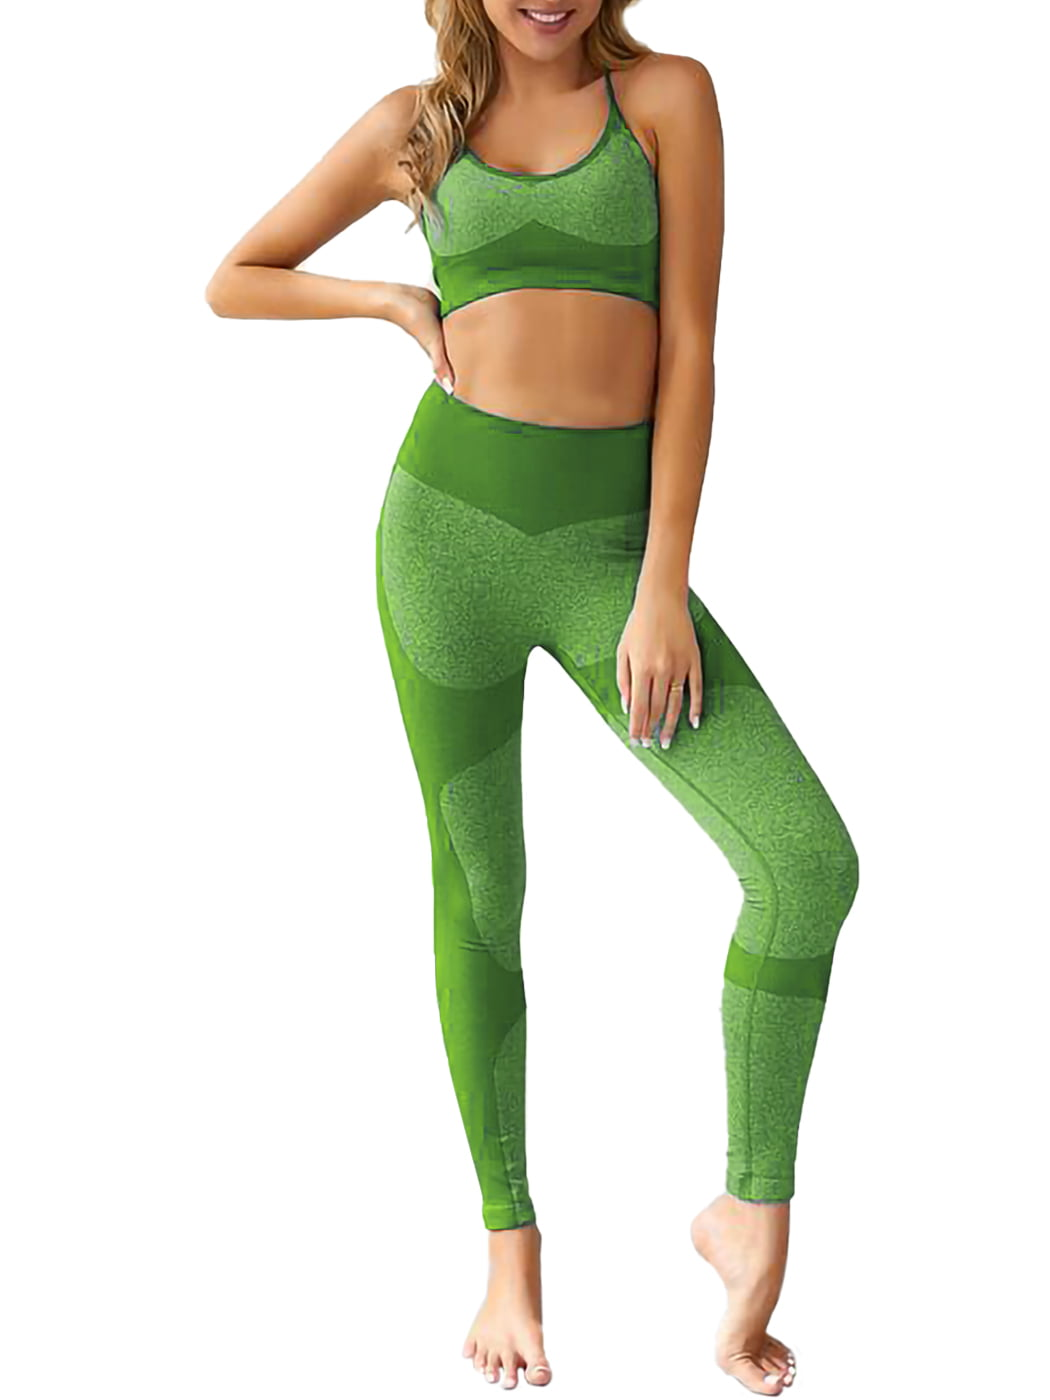 Women/'s Yoga Sets Two pieces Gym Clothing Bra /& Leggings 3D Floral Workout Outfi